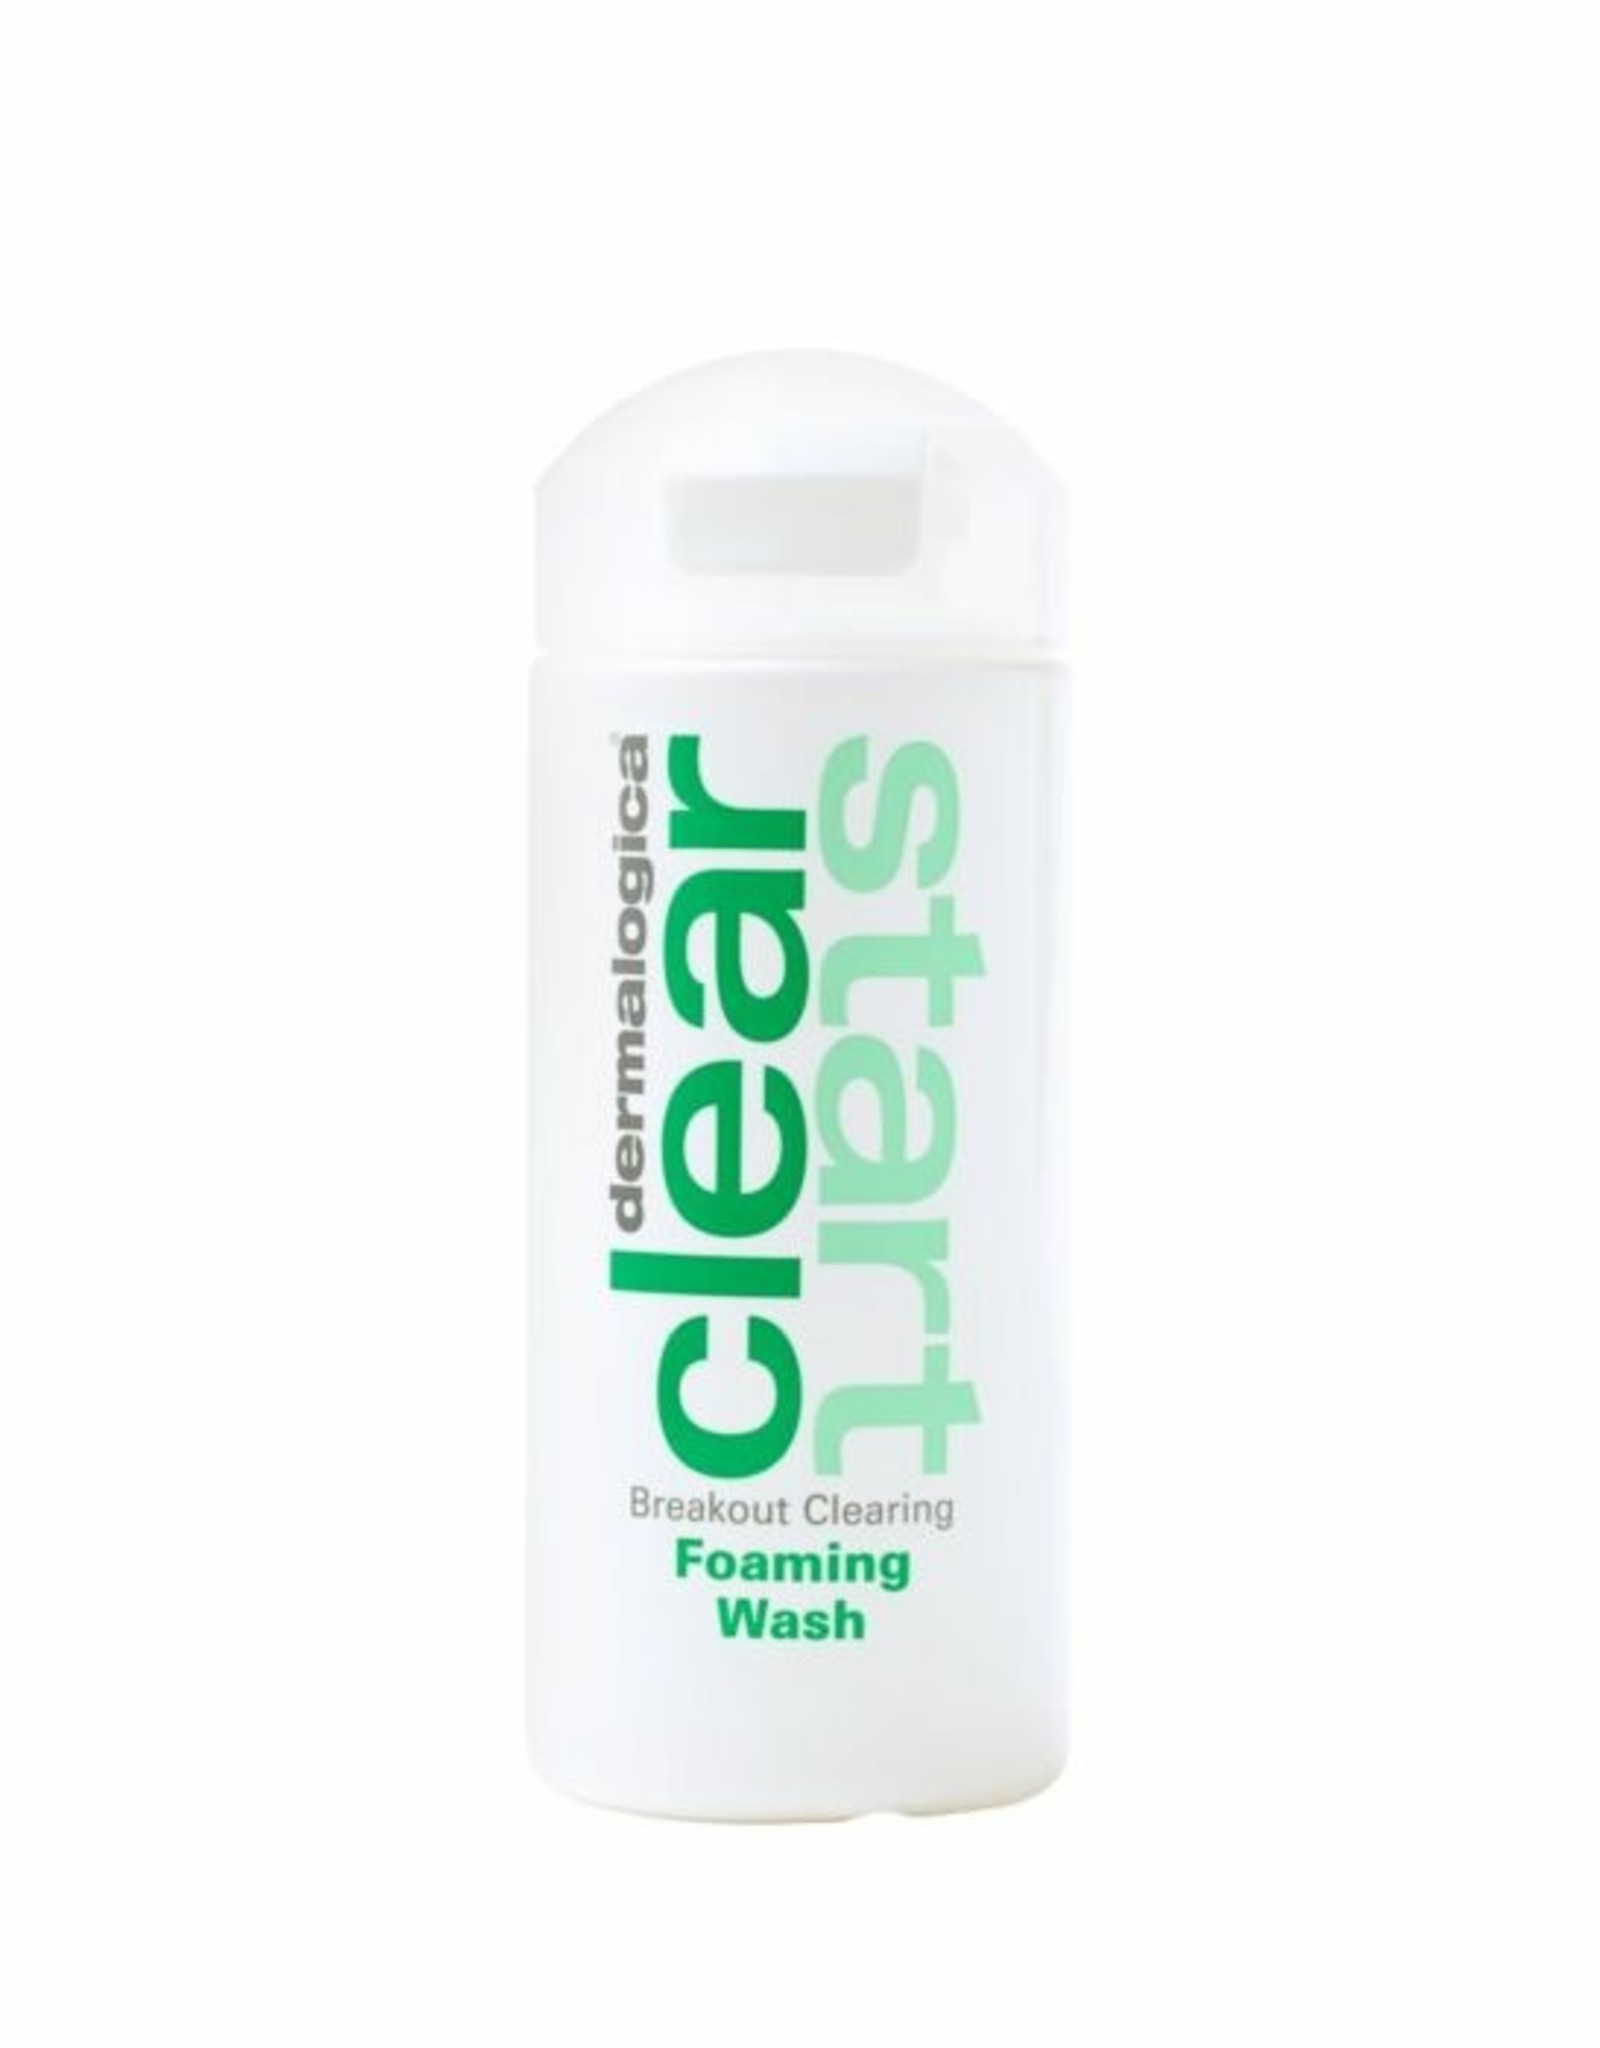 Dermalogica Clear Start - Breakout Clearing Foaming Wash 177ml - Dermalogica